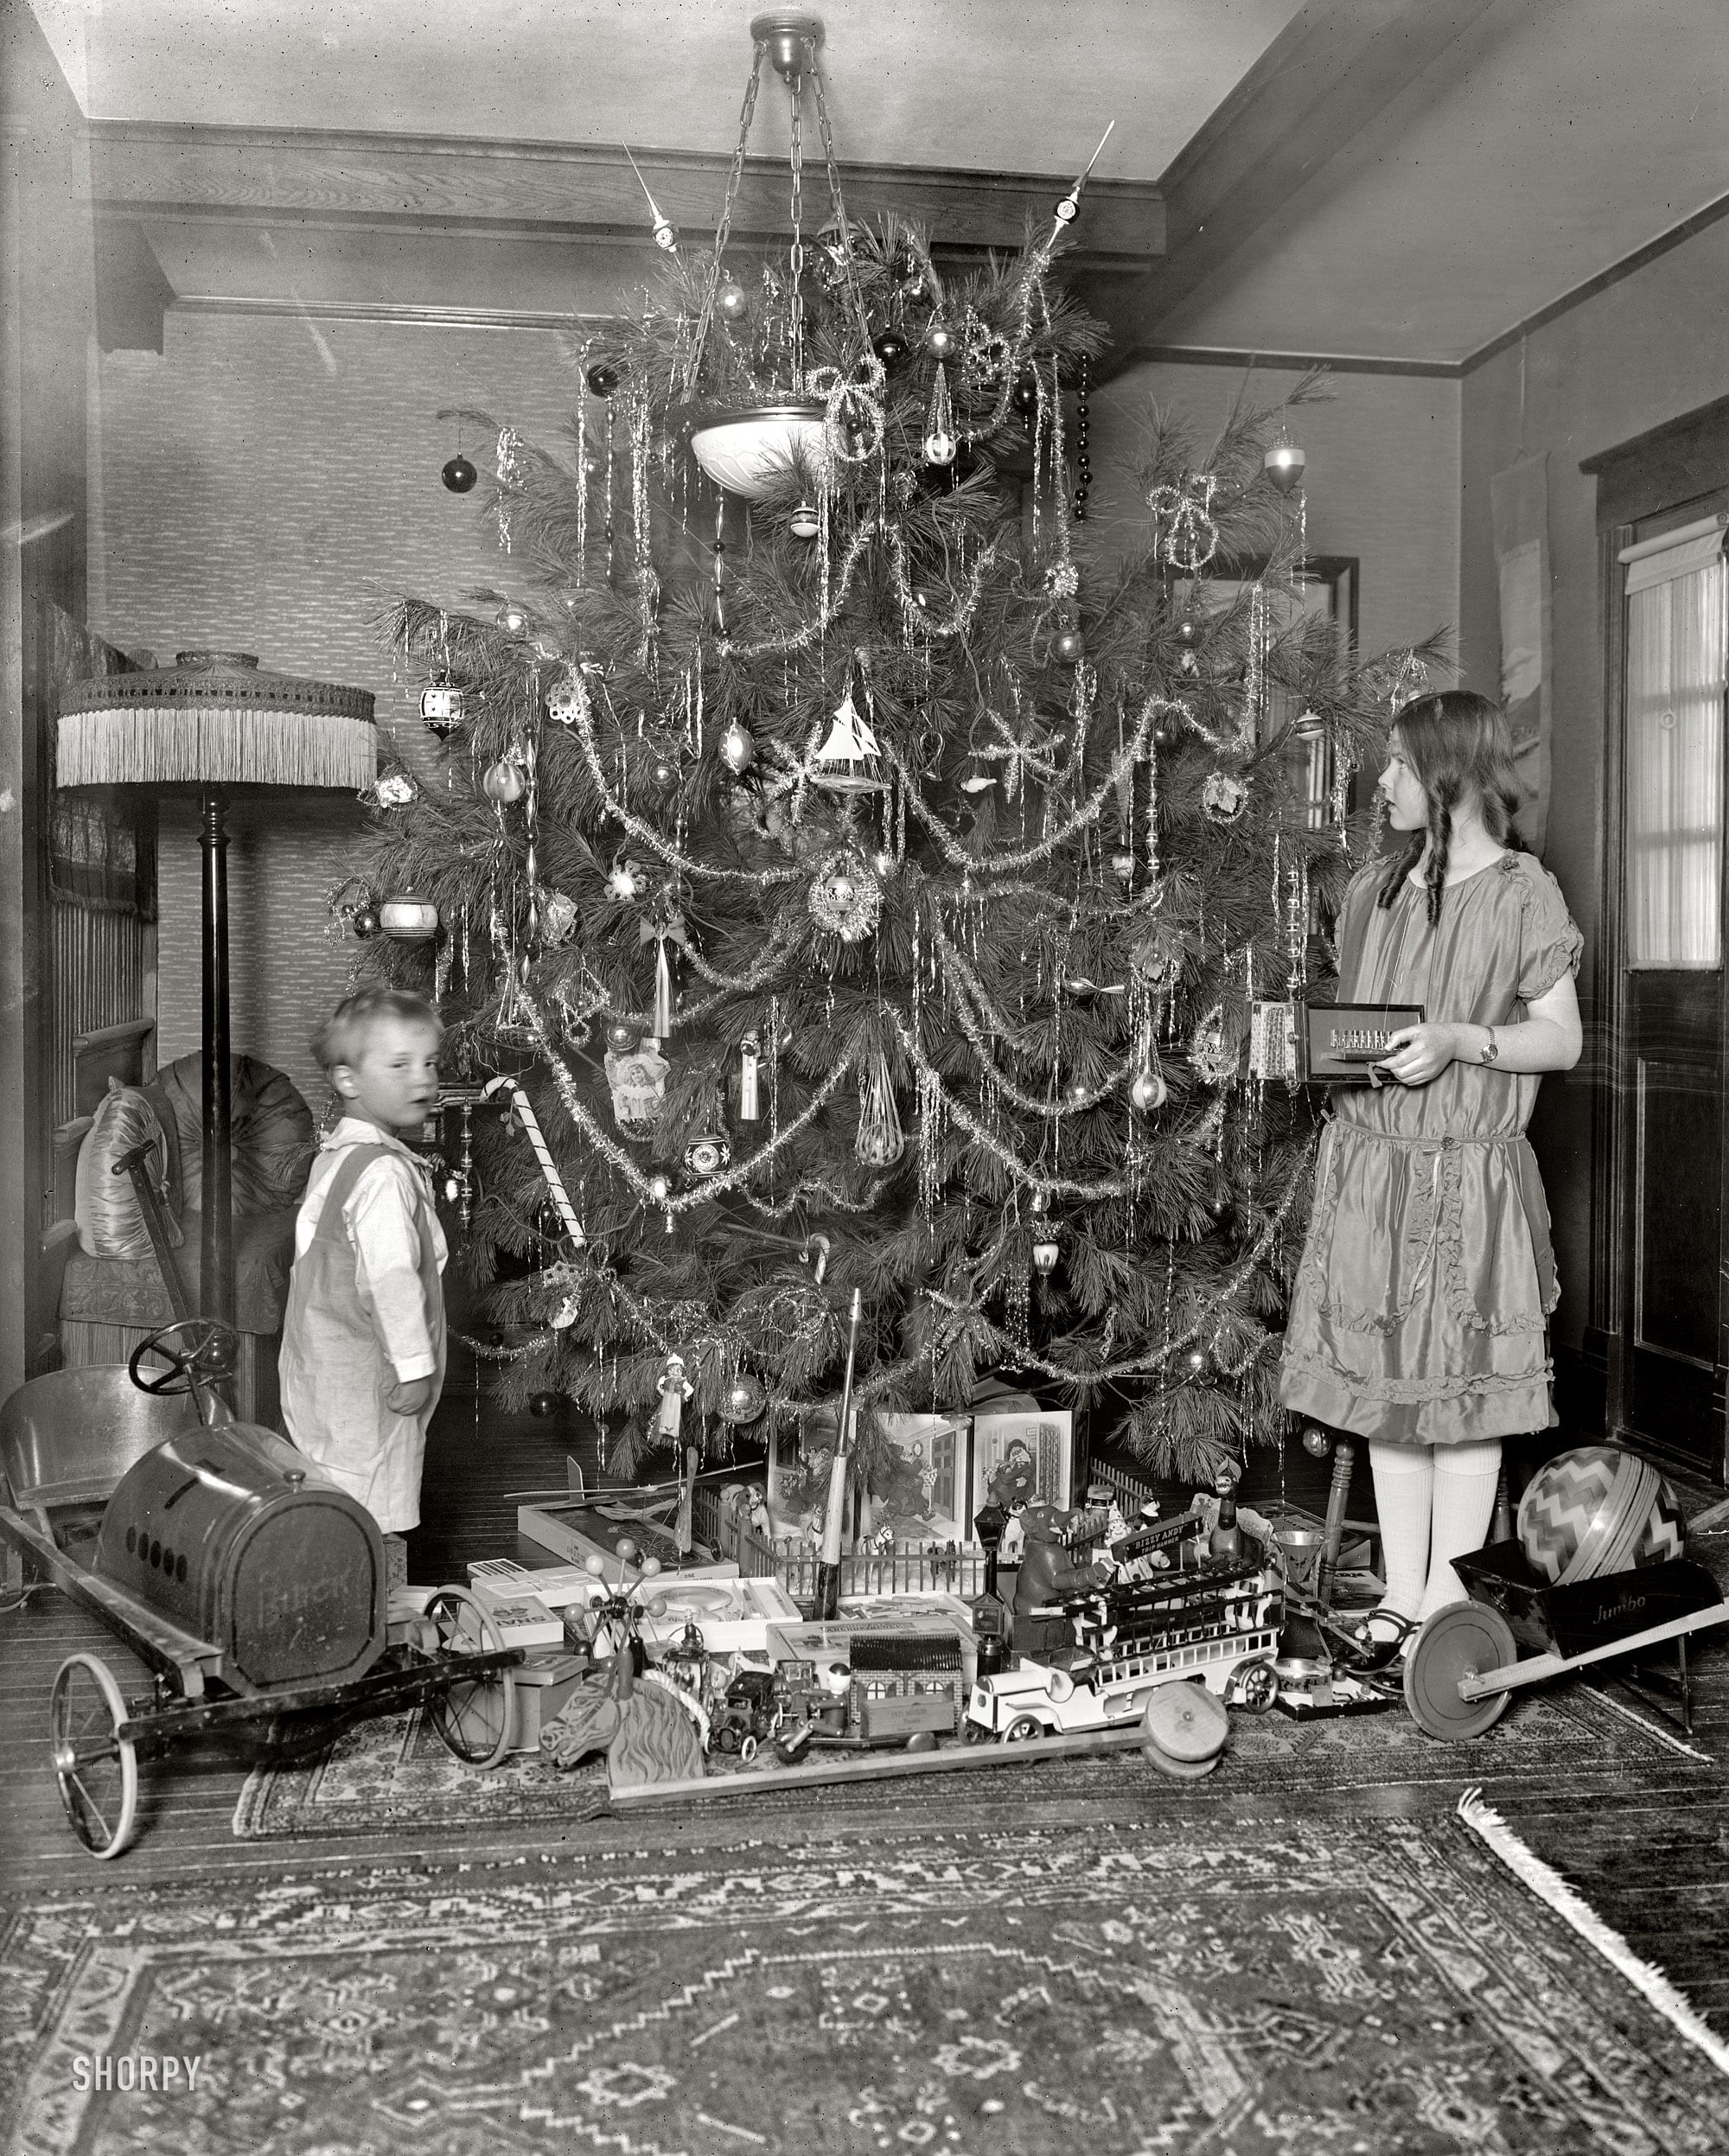 Merry Christmas in 1920